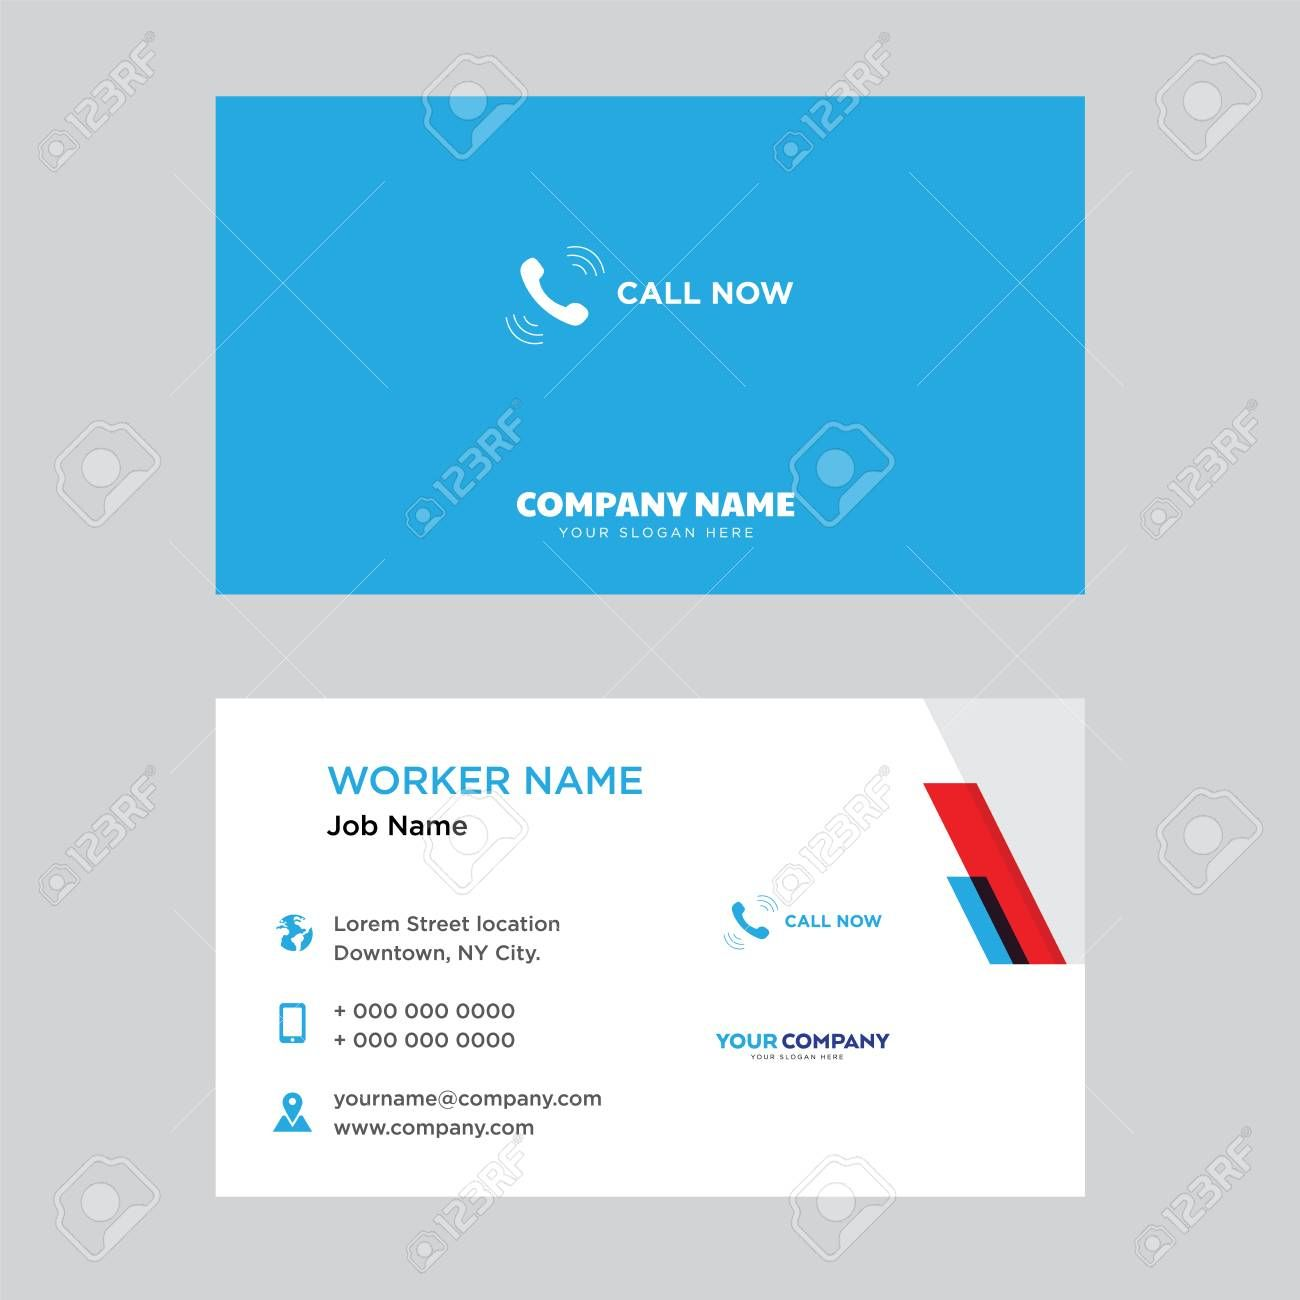 Call Now Business Card Design Template In Front And Back Illustration In Business Card Template Design Business Card Template Word Business Card Template Psd